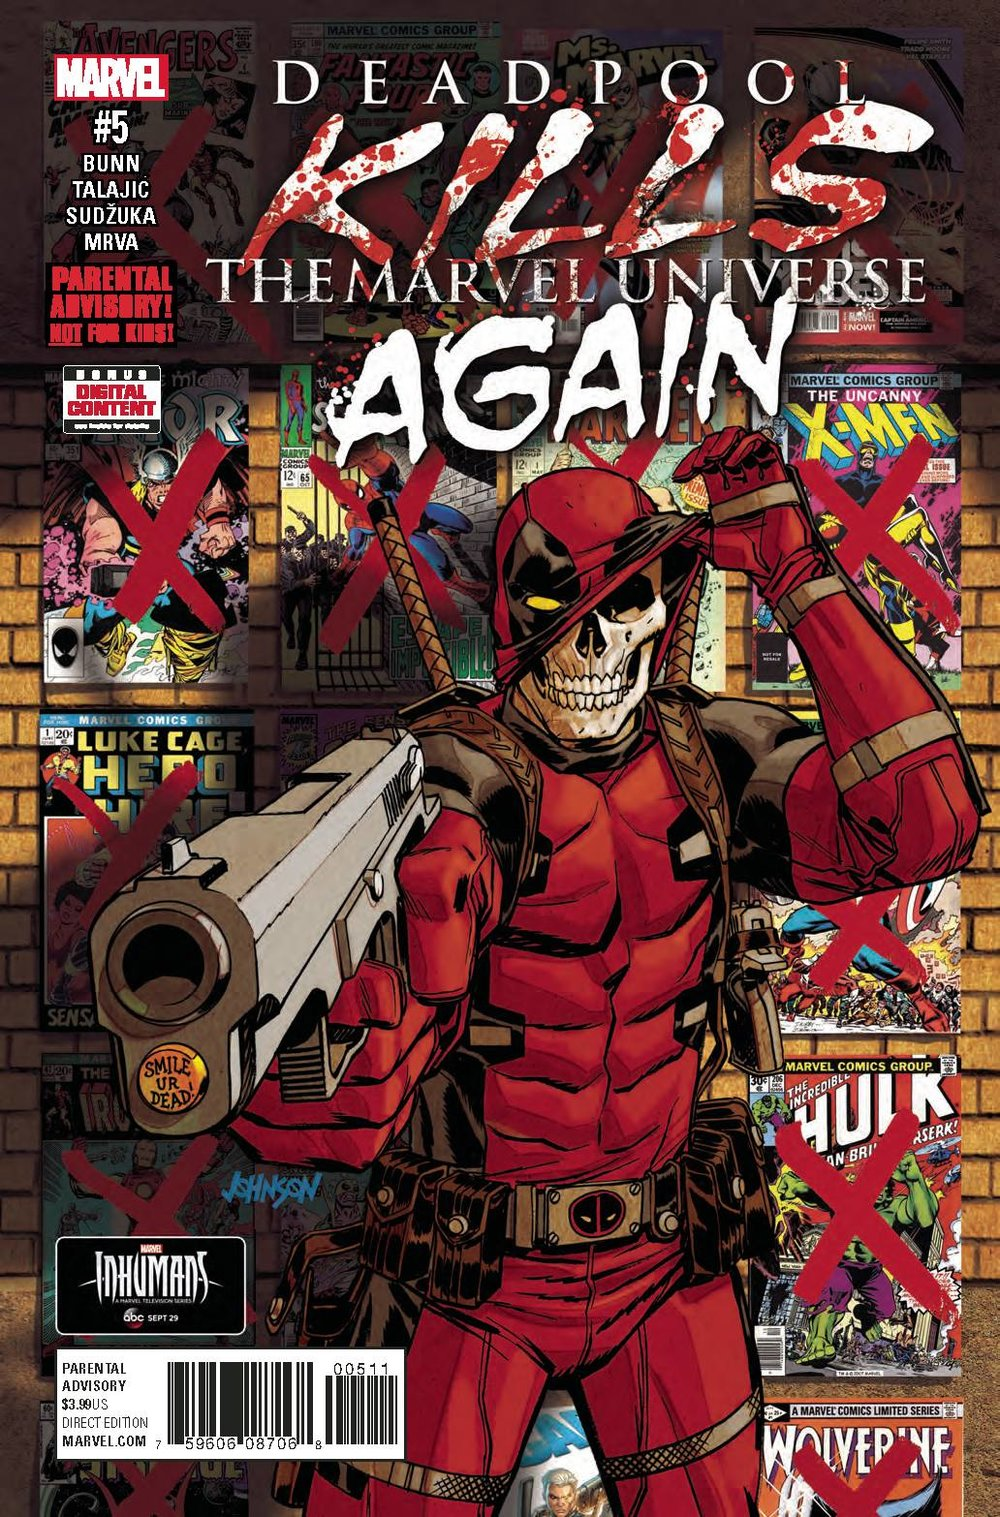 DEADPOOL KILLS MARVEL UNIVERSE AGAIN 5 of 5.jpg